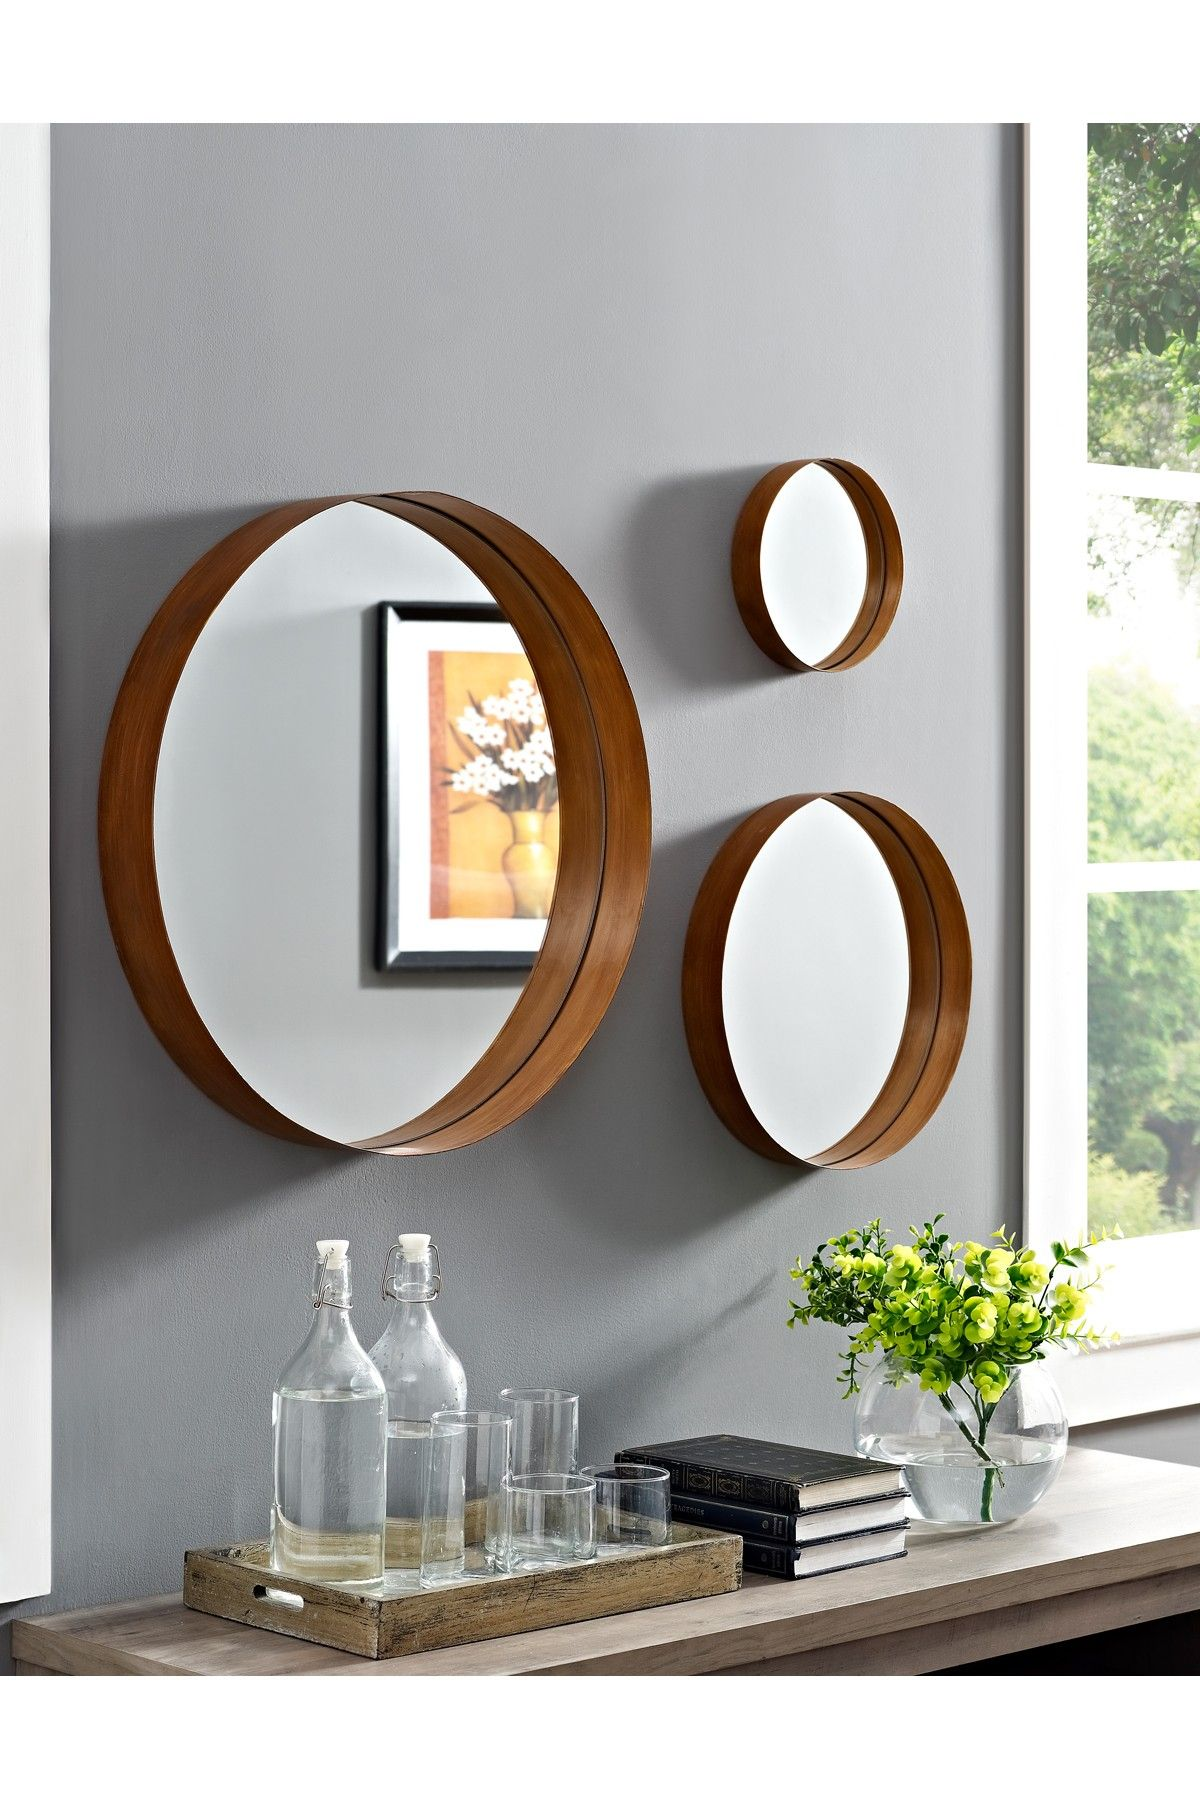 Walker Edison Furniture pany Banded Round Copper Mirrors Set of